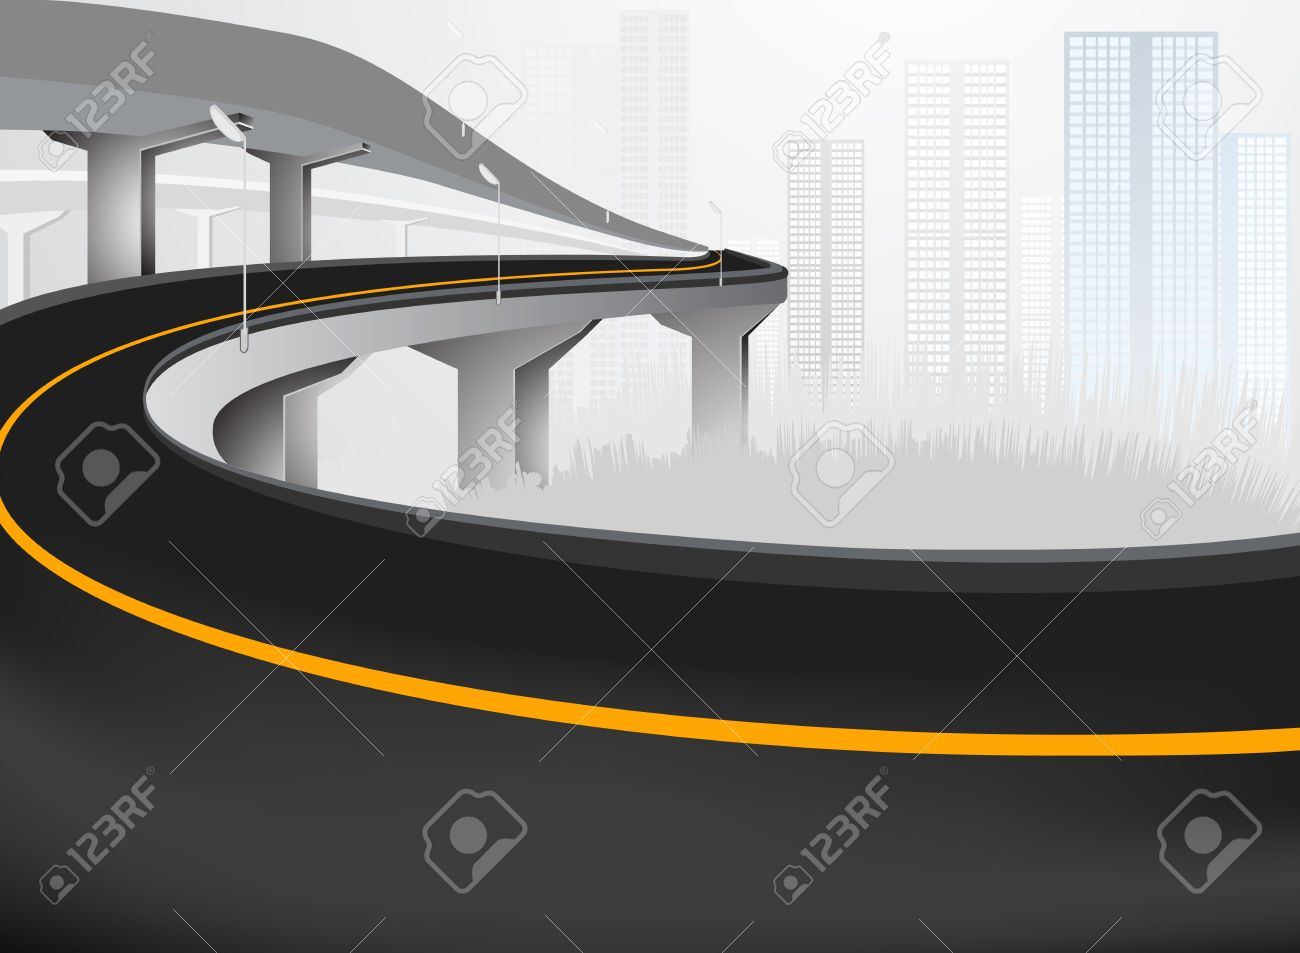 Elevated Road Expressway Into City Royalty Free Cliparts, Vectors.